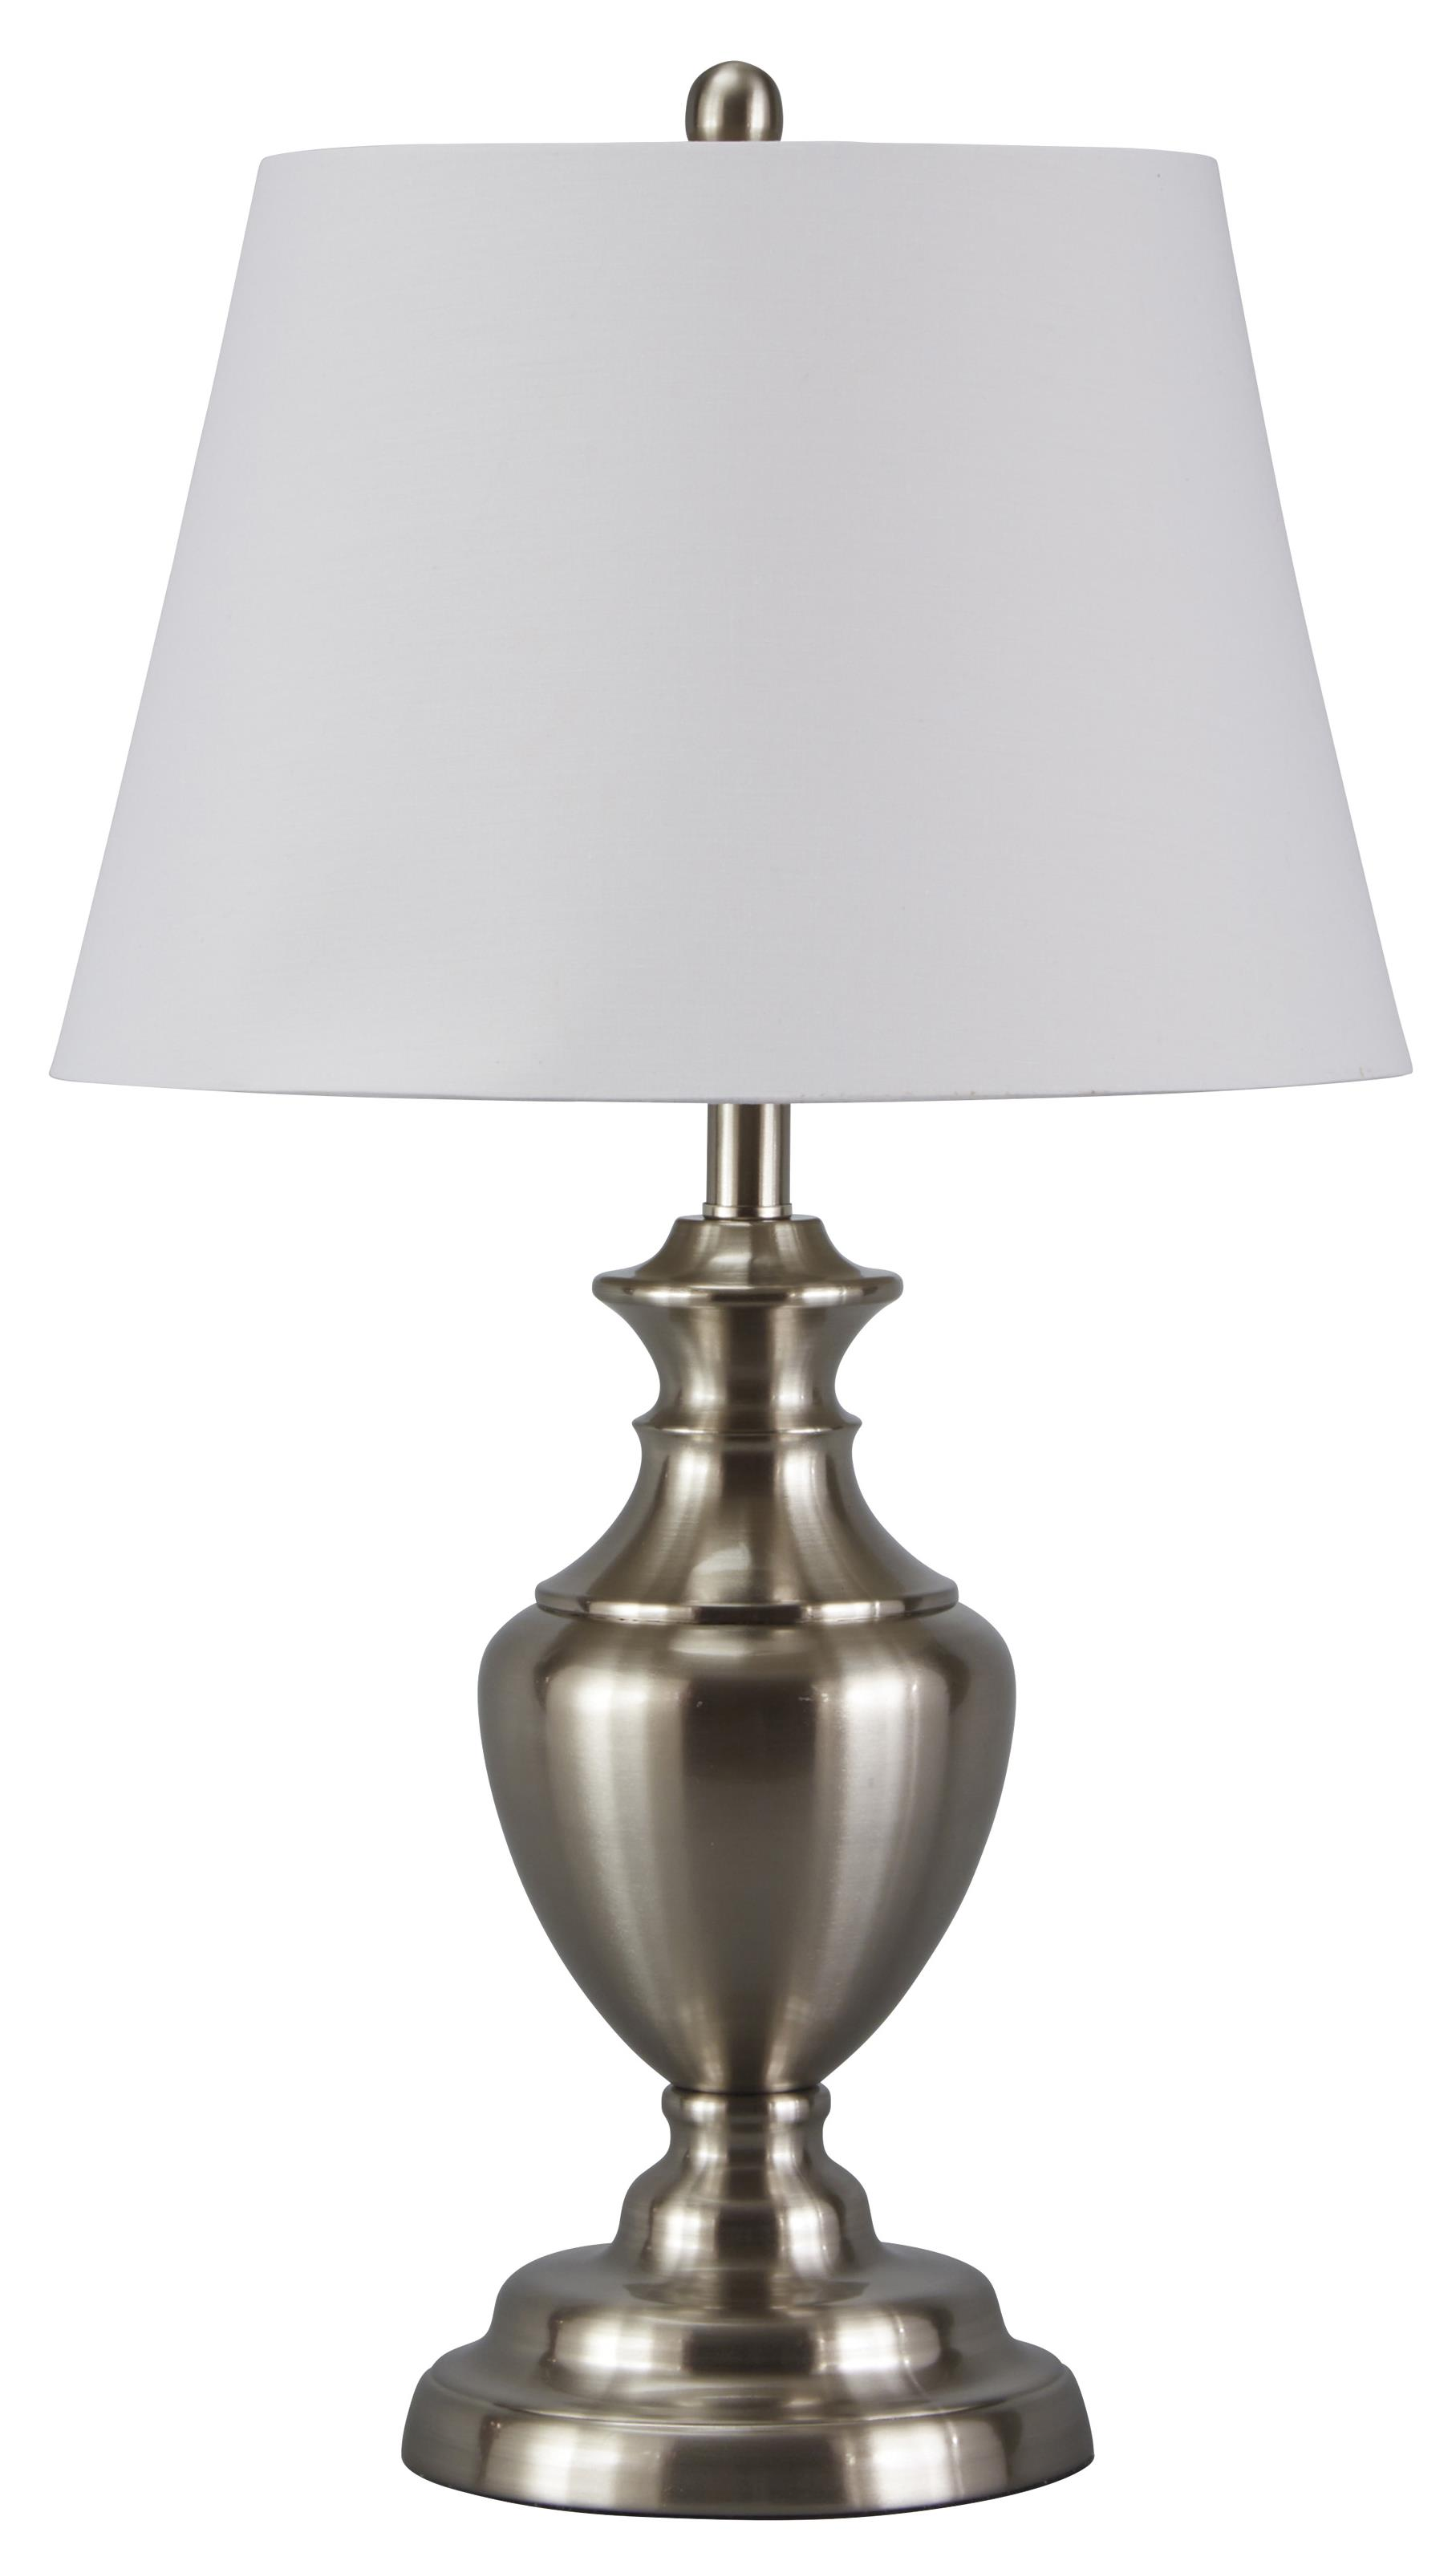 Signature Design by Ashley Lamps - Traditional Classics Set of 2 Takoda Metal Table Lamps - Item Number: L204014